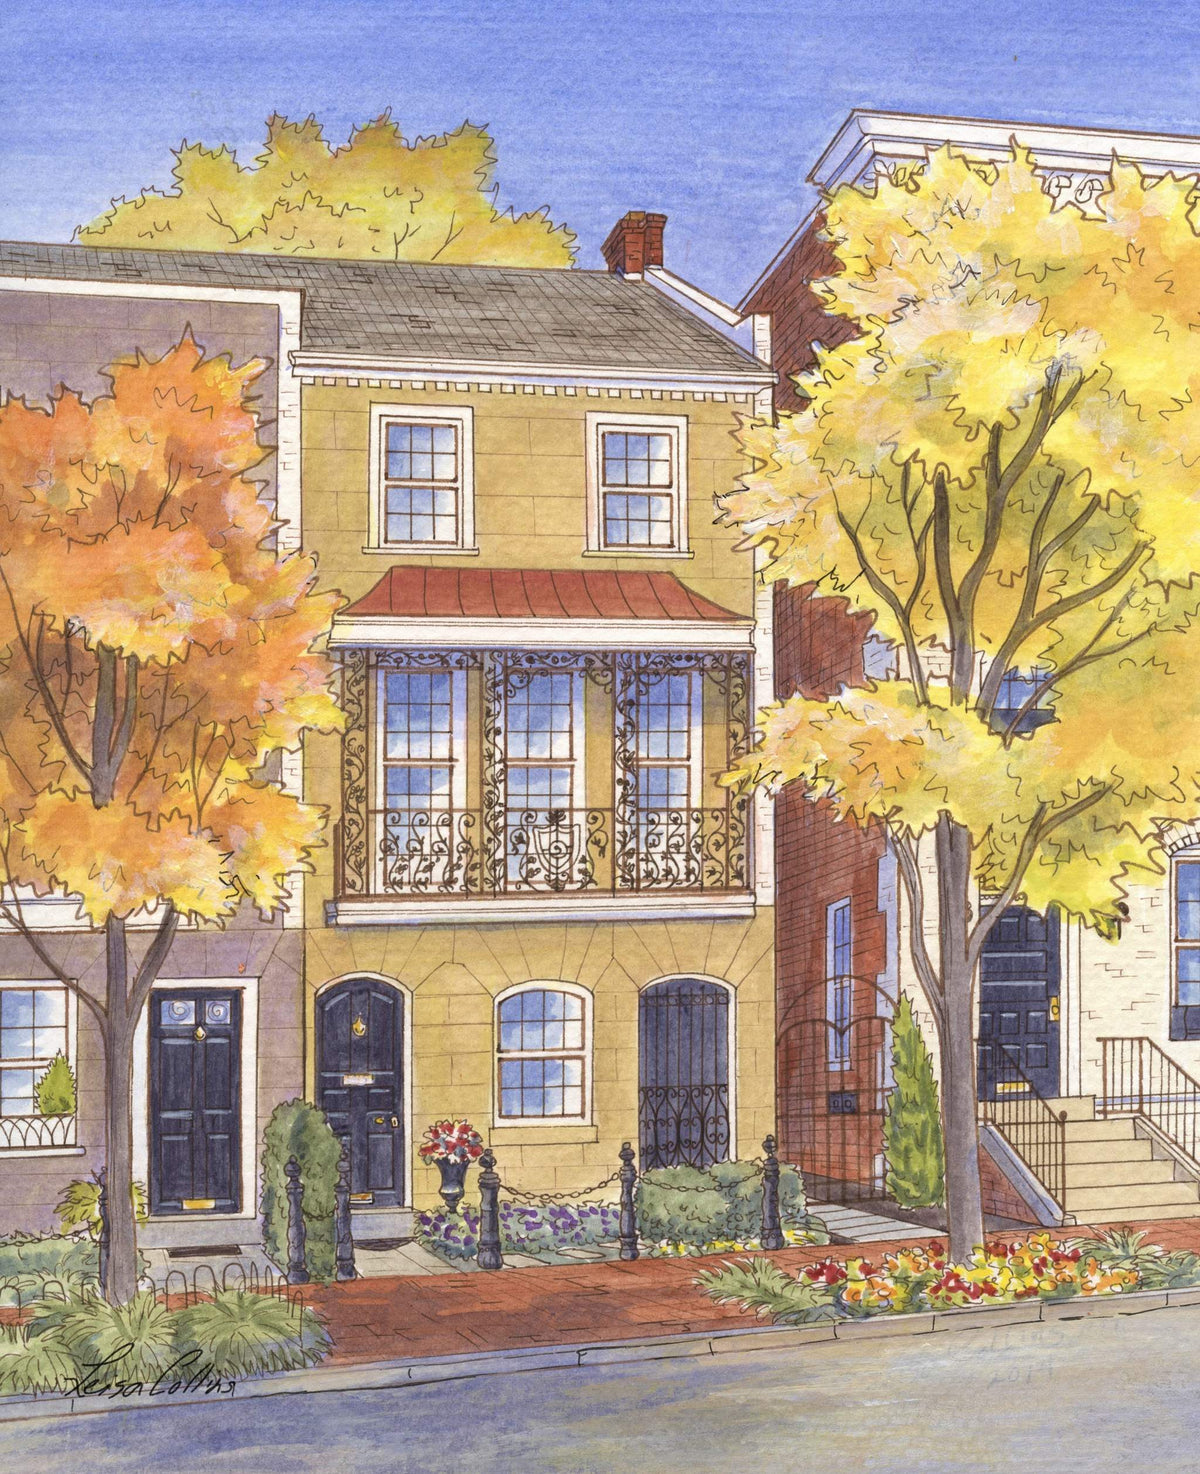 leisa-collins-art-shop - Washington DC in the Fall - Pen and watercolor